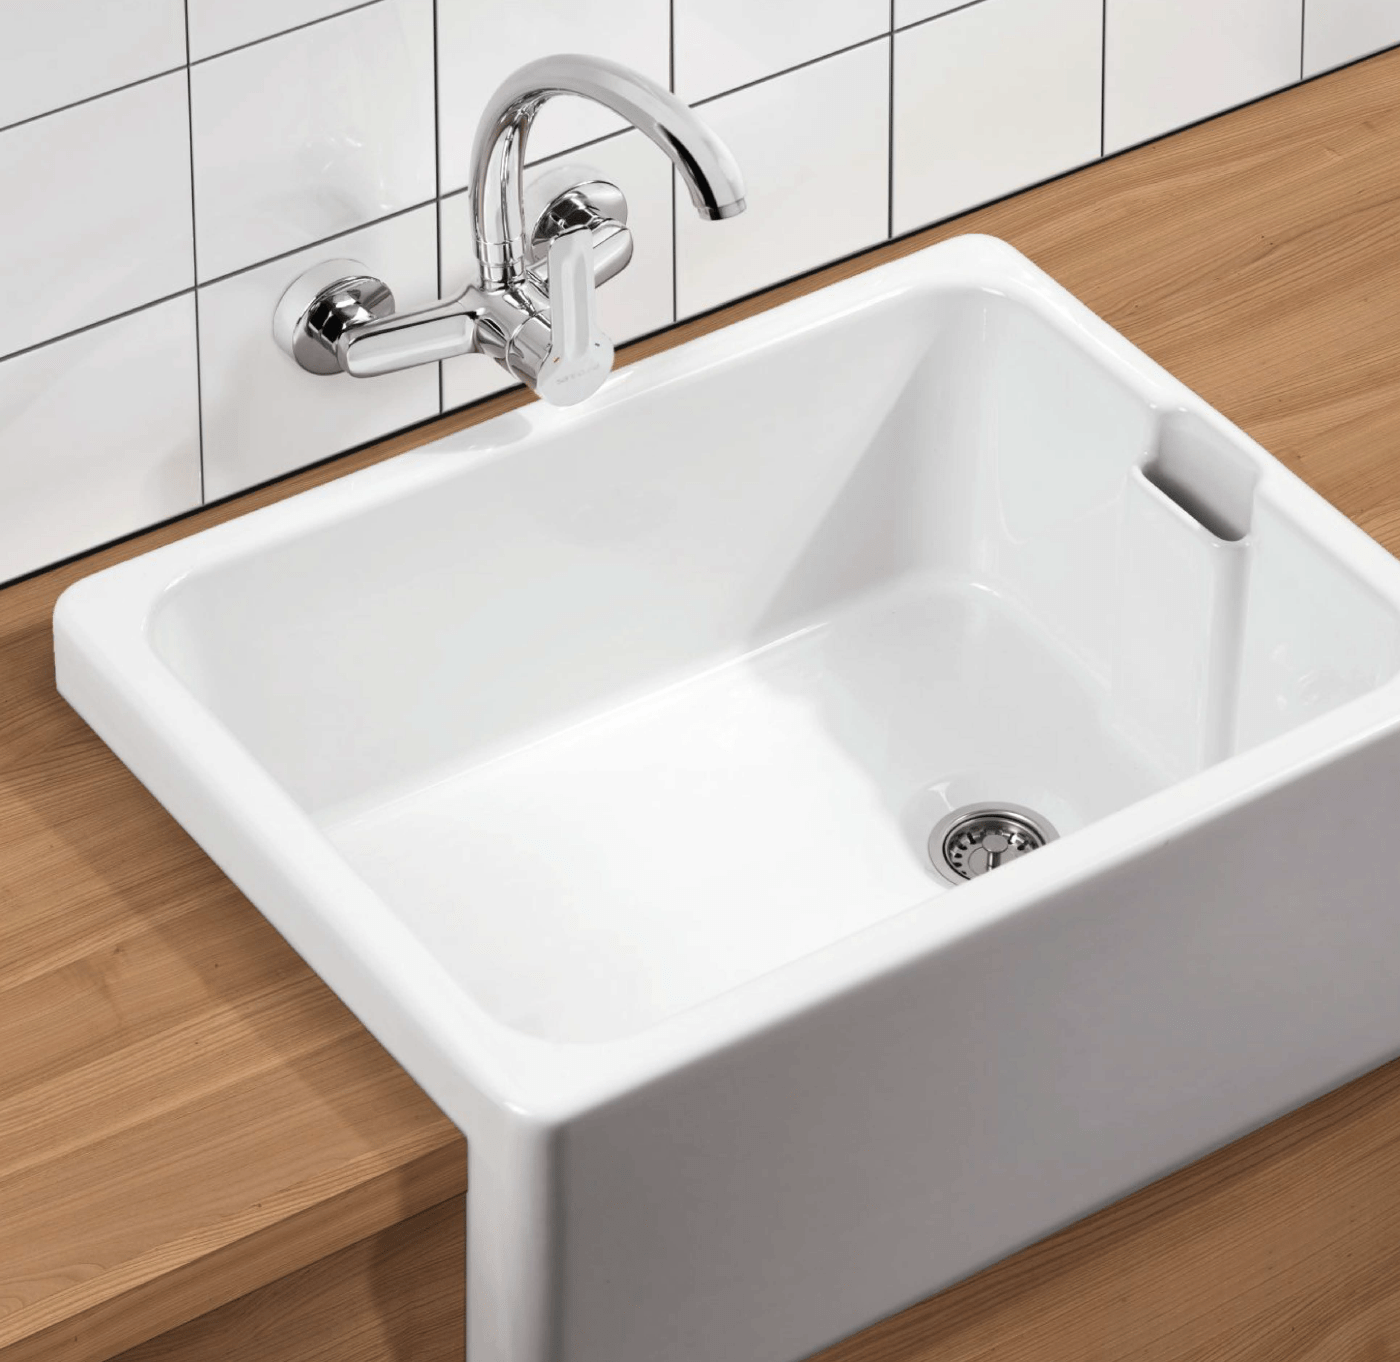 Sinks Osb Group